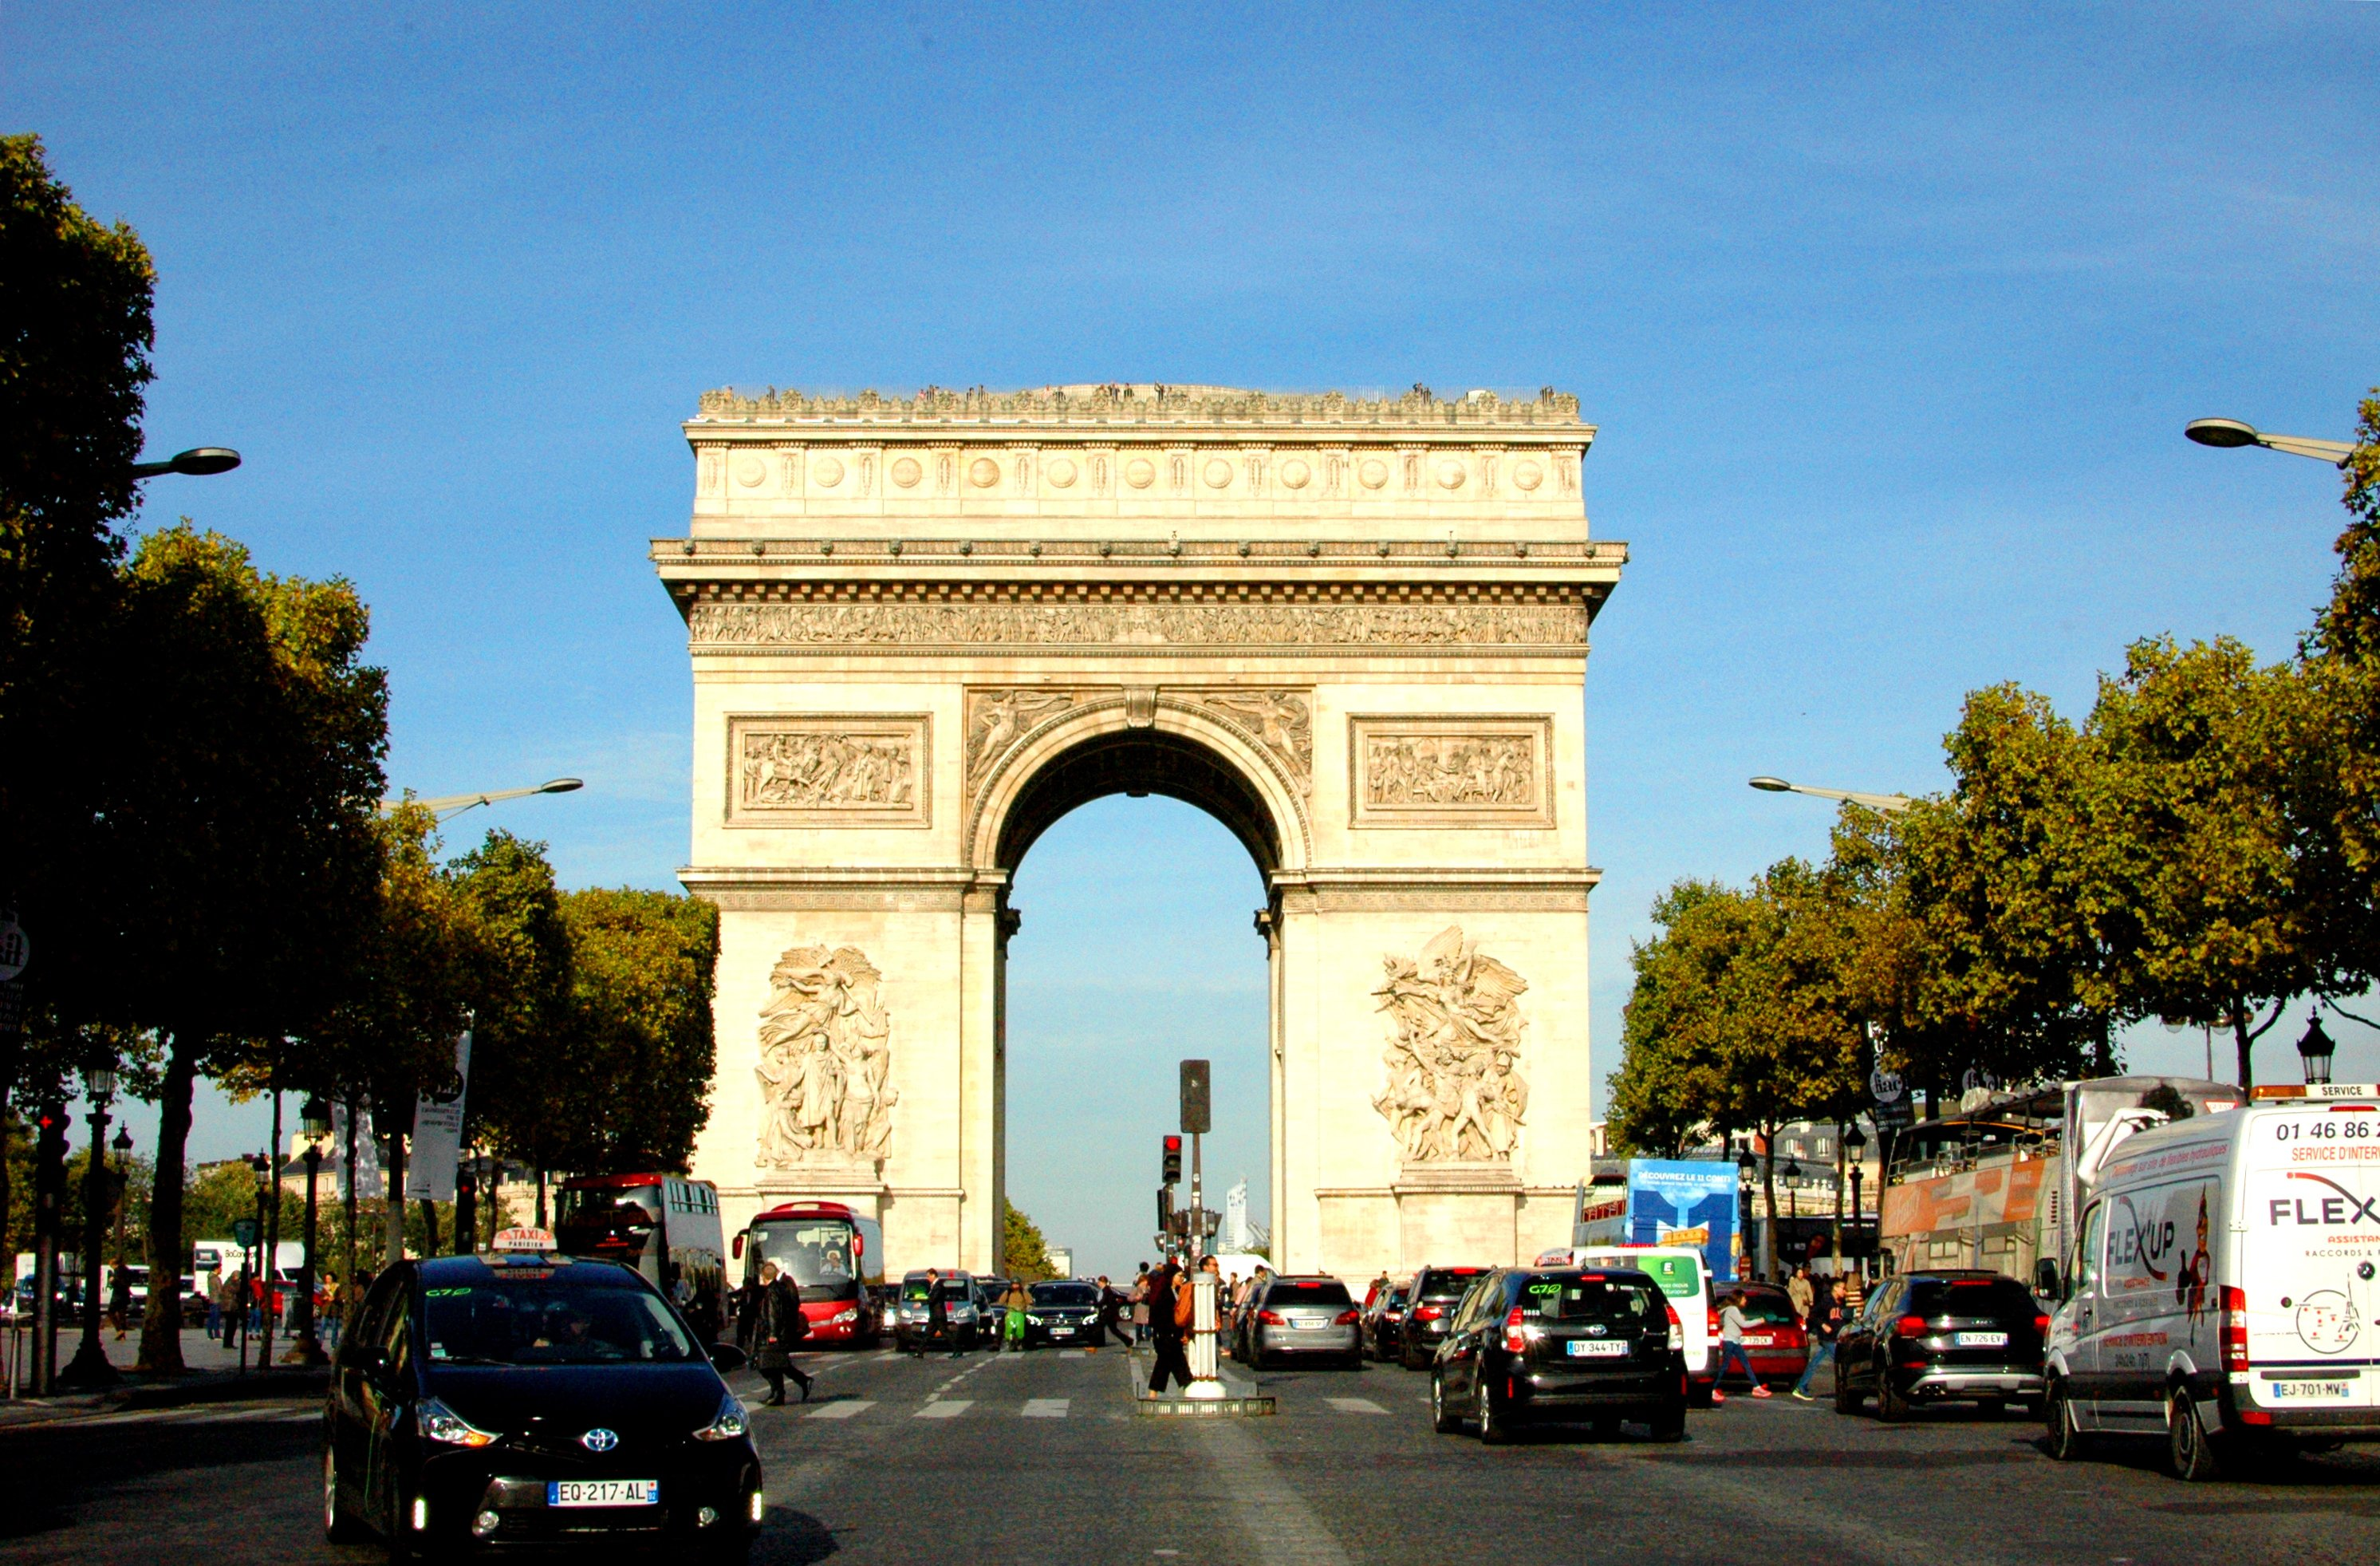 16 Cool Things to Do in Paris - Arc de Triomphe. Champs Elysees